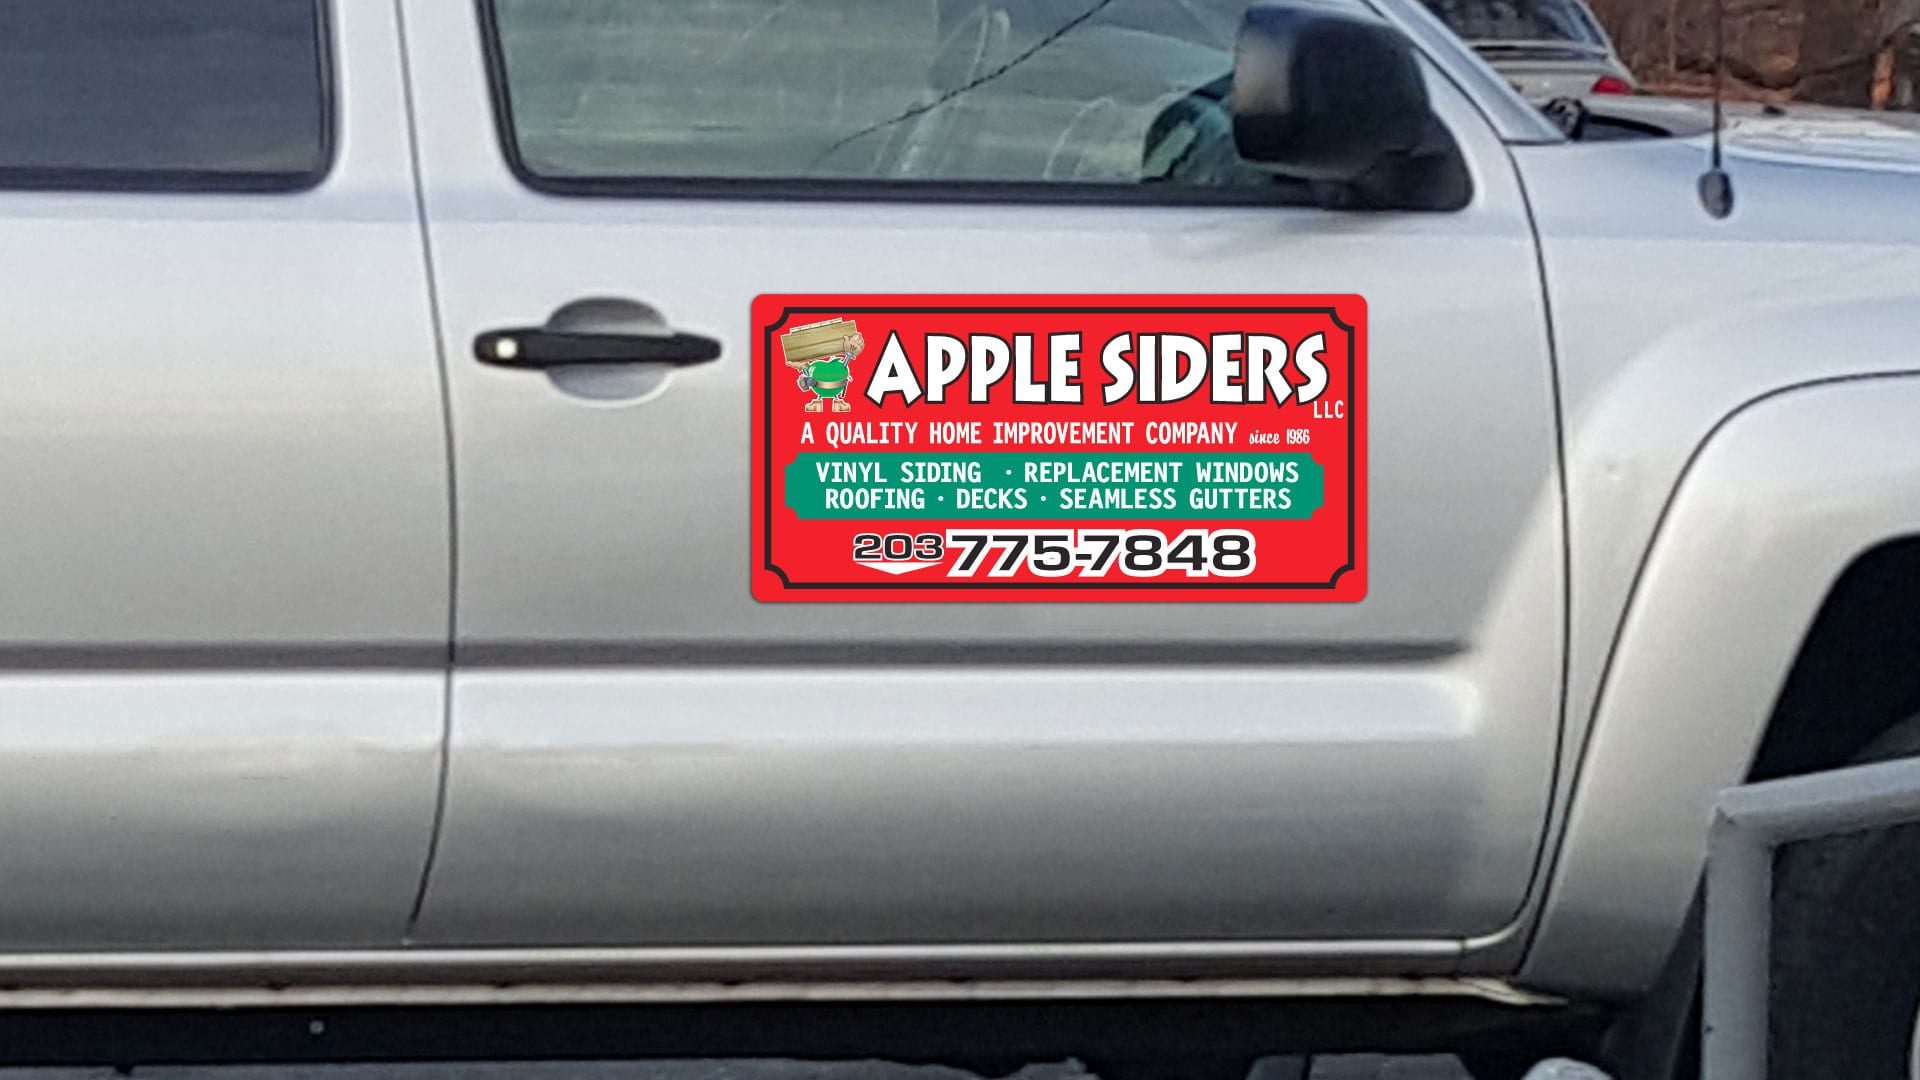 Custom car magnet for Apple Siders